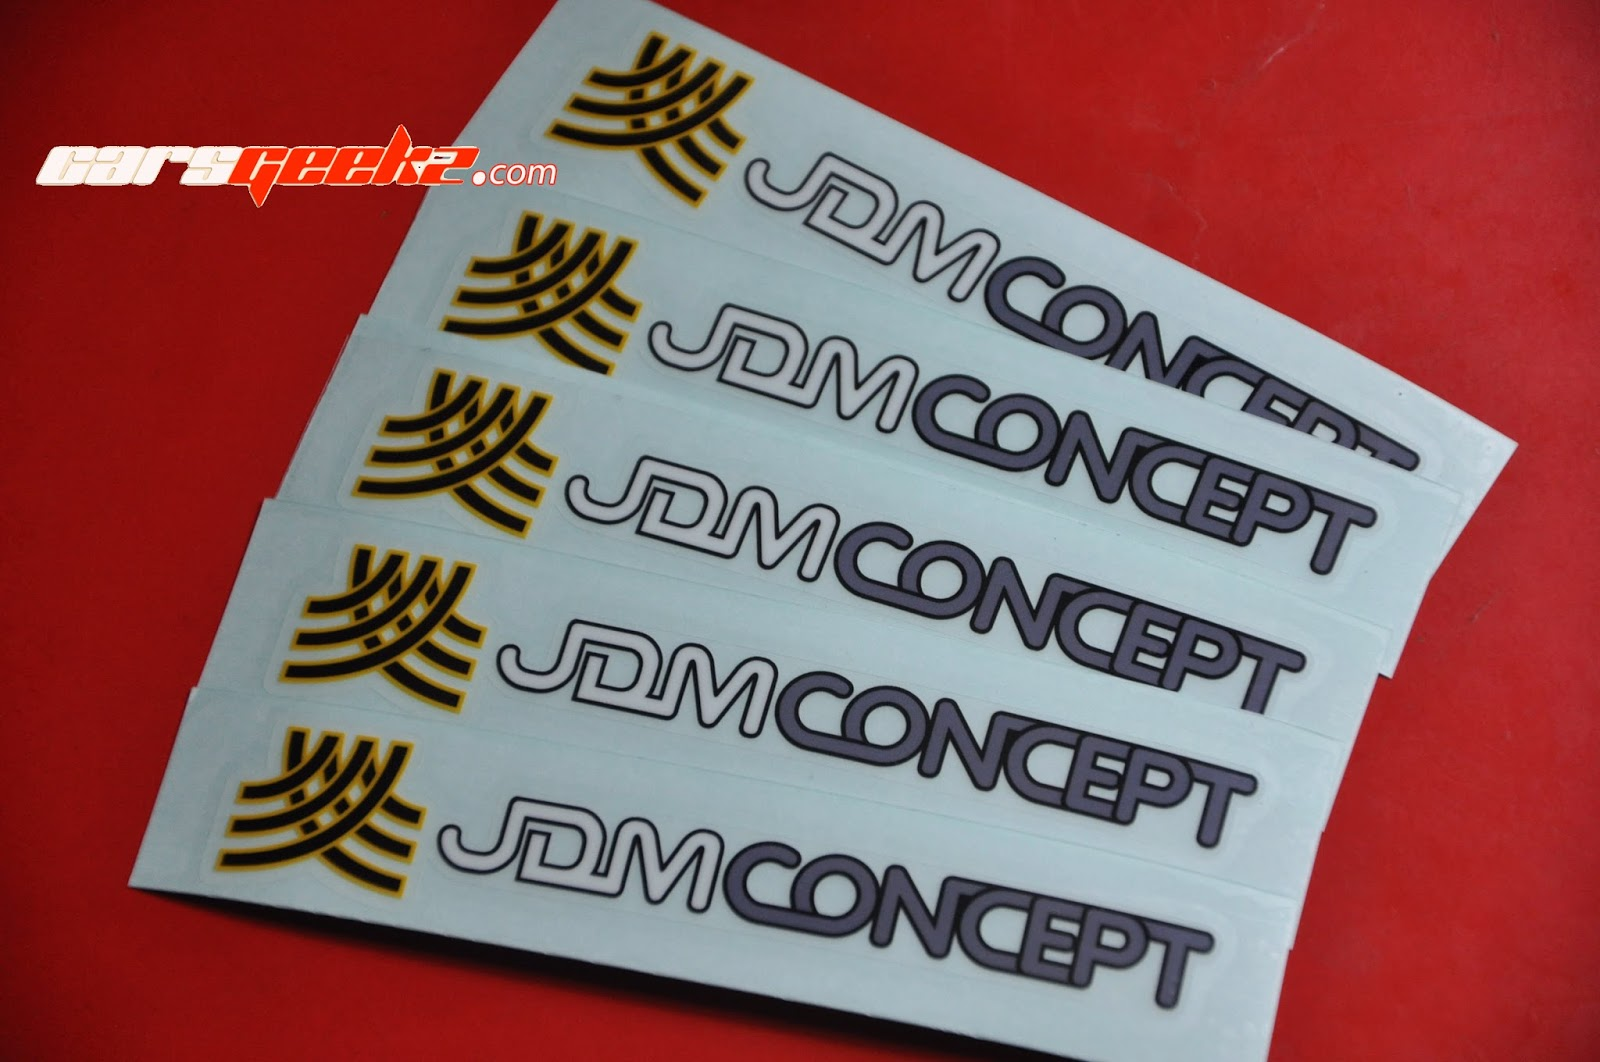 JDM Concept sticker / decal / vinyl OEM 3